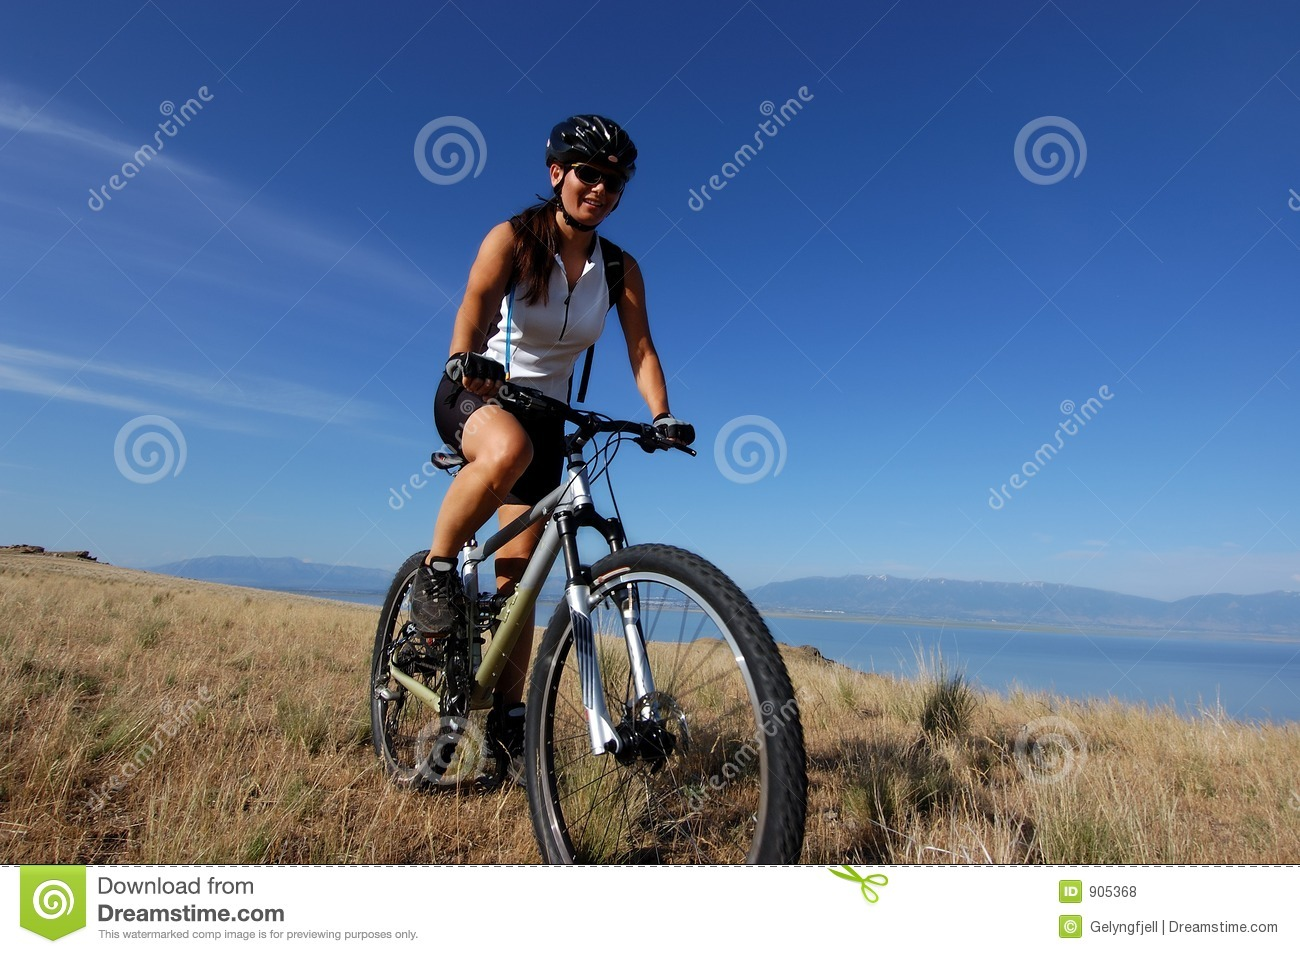 Biker Girl Wallpaper Free Download Female Mountain Biker Royalty Free Stock Photos Image